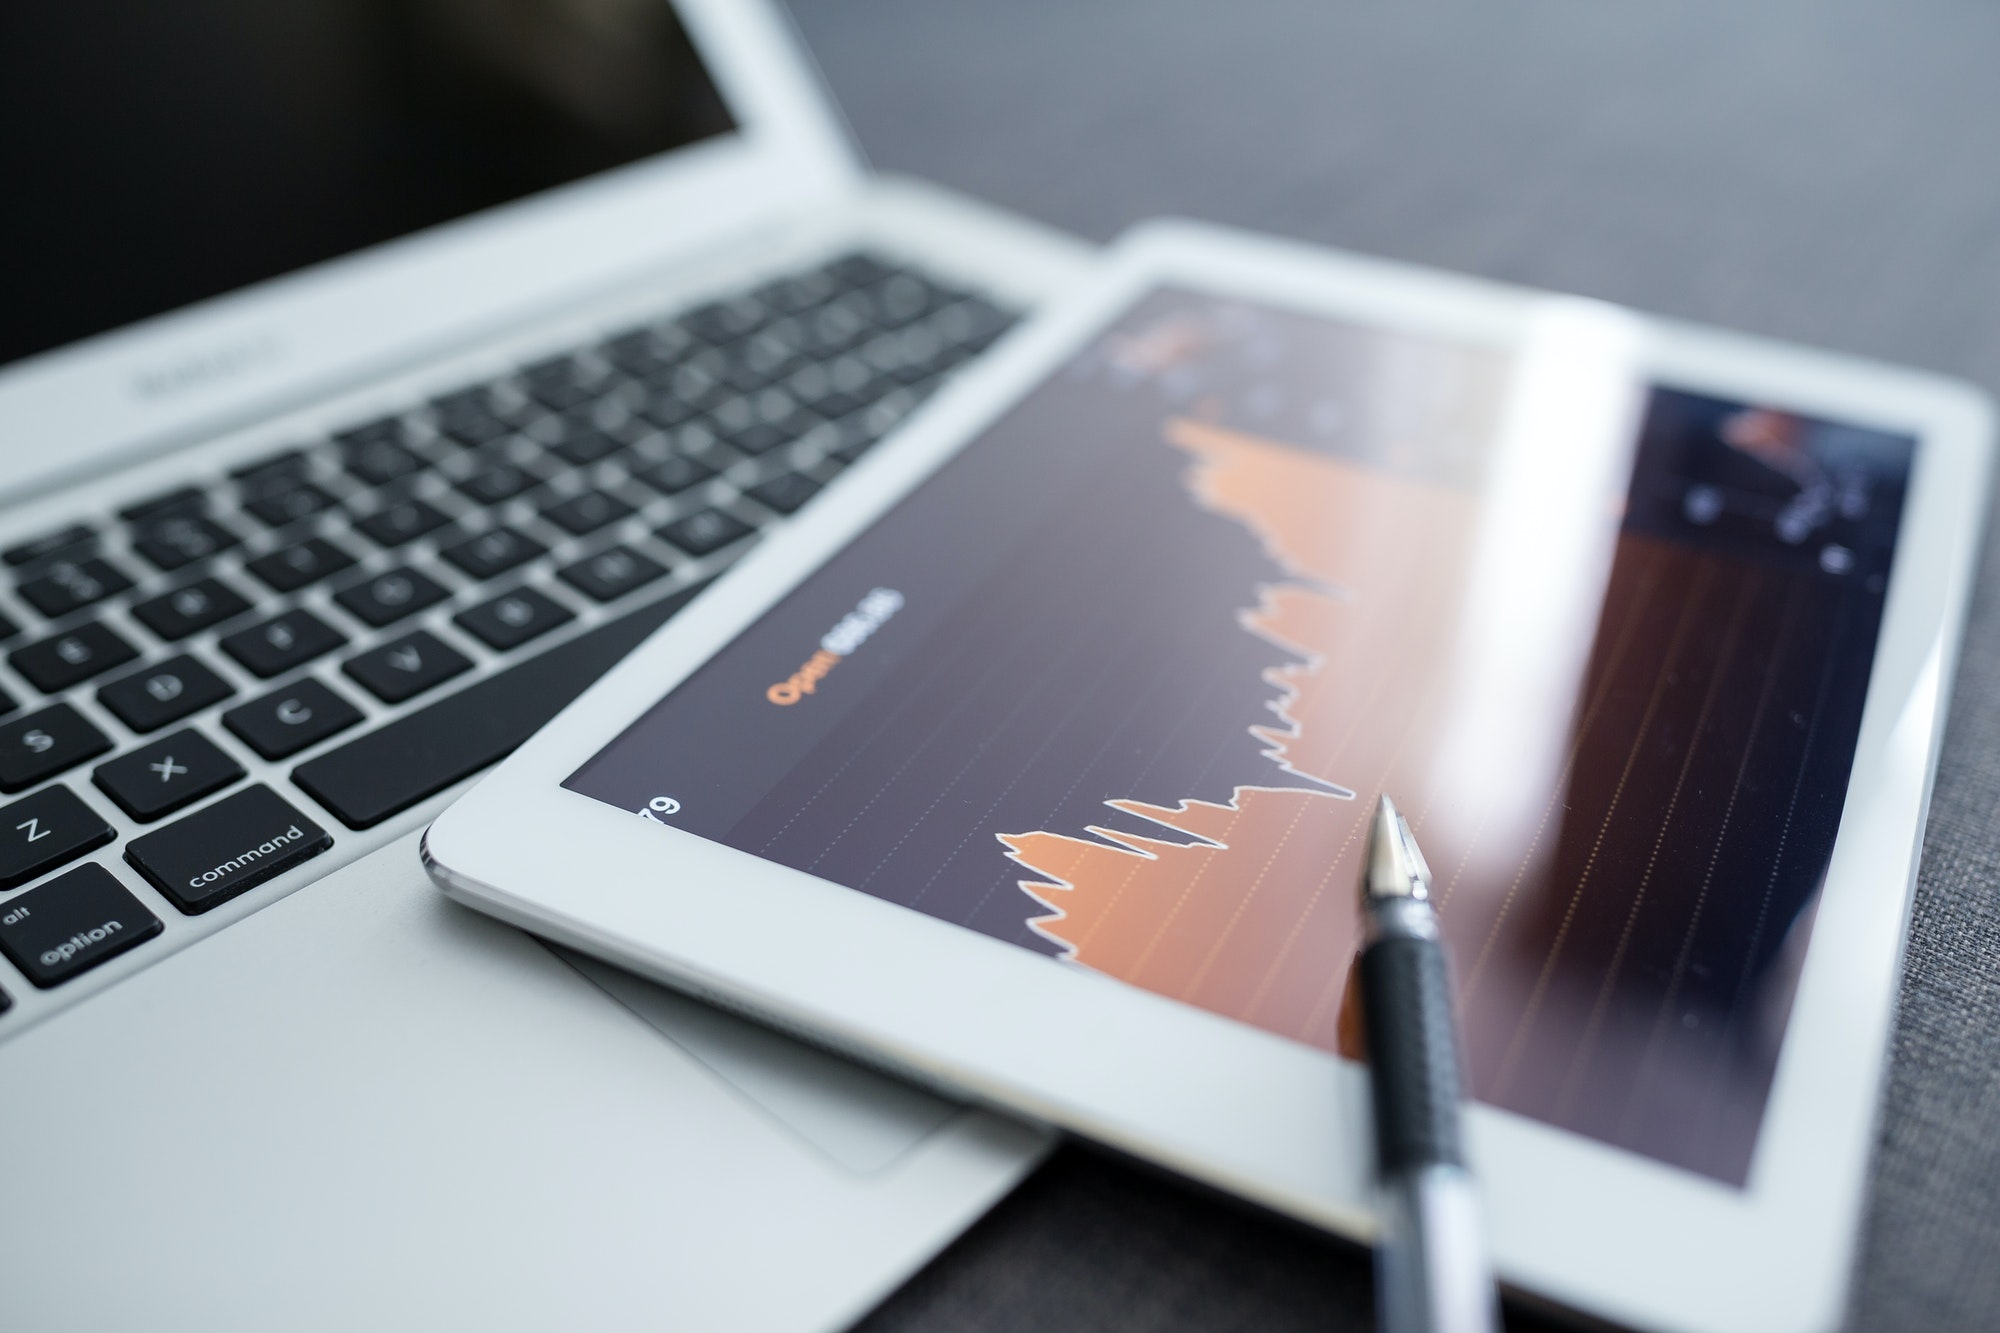 Stock market trading on a tablet computer